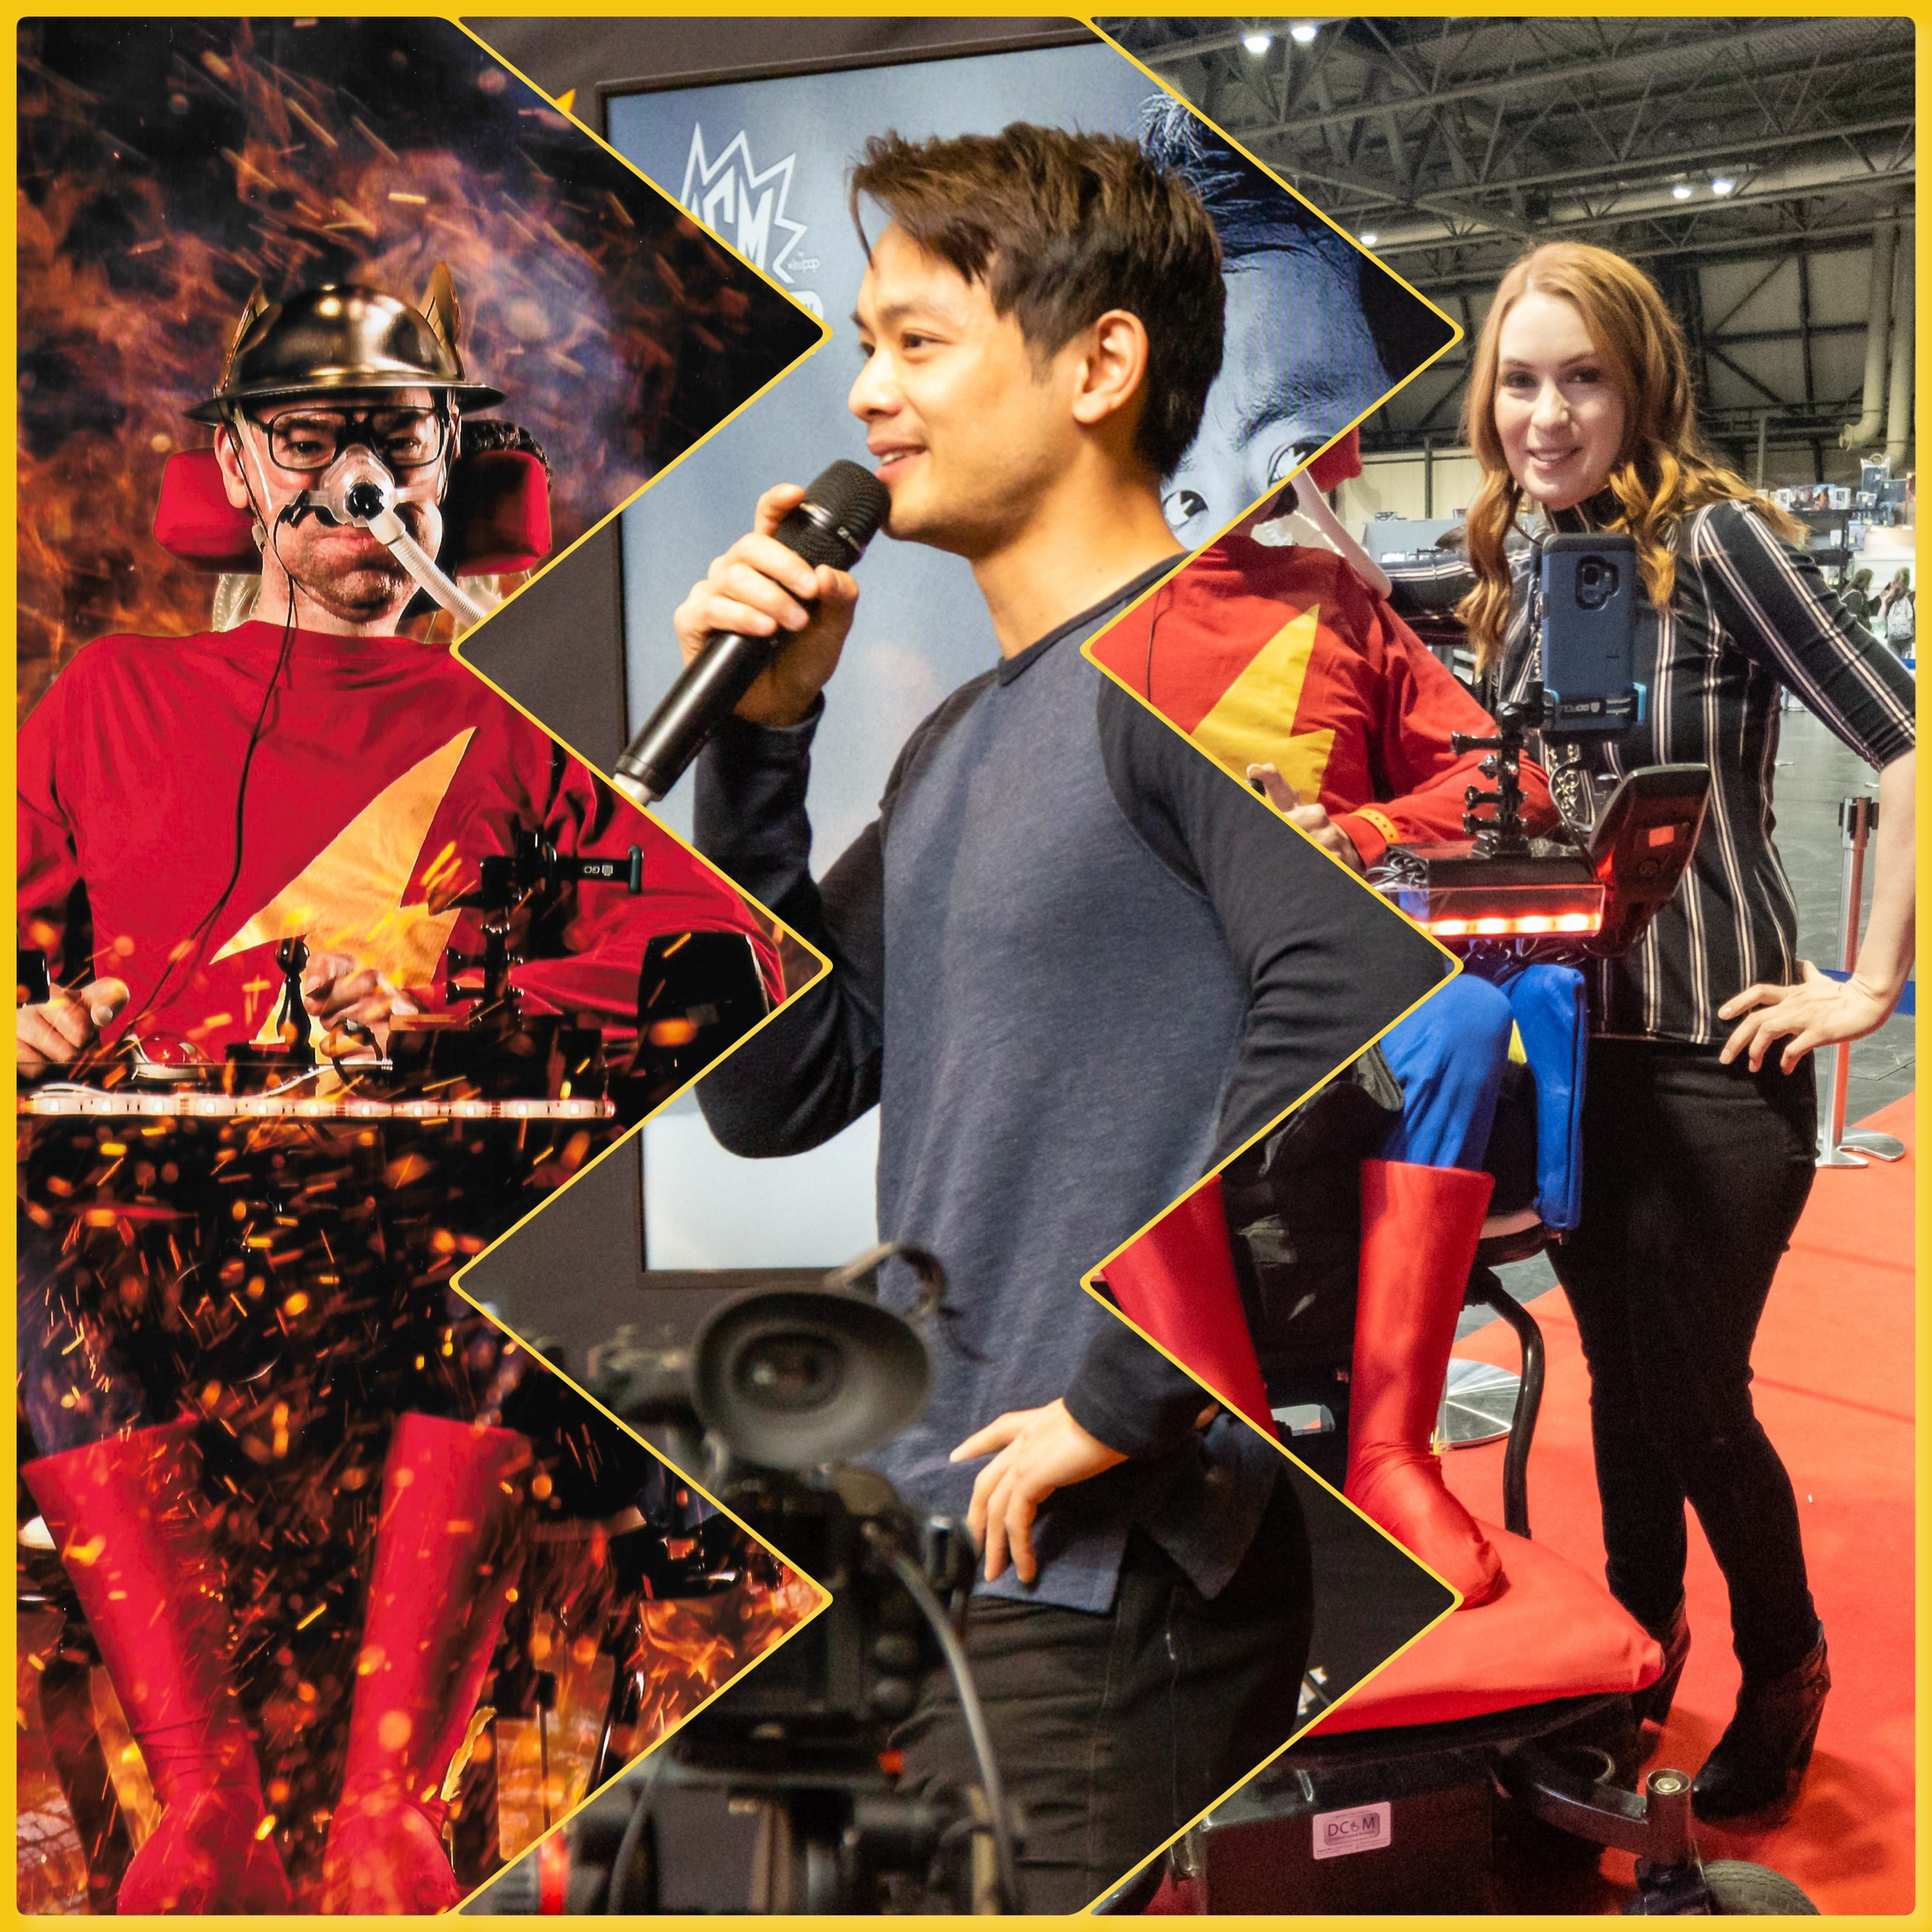 collage of Daniel Baker dressed as Jay Garrick, Osric Chau and Felicia Day at Mcm Comiccon Birmingham 2019